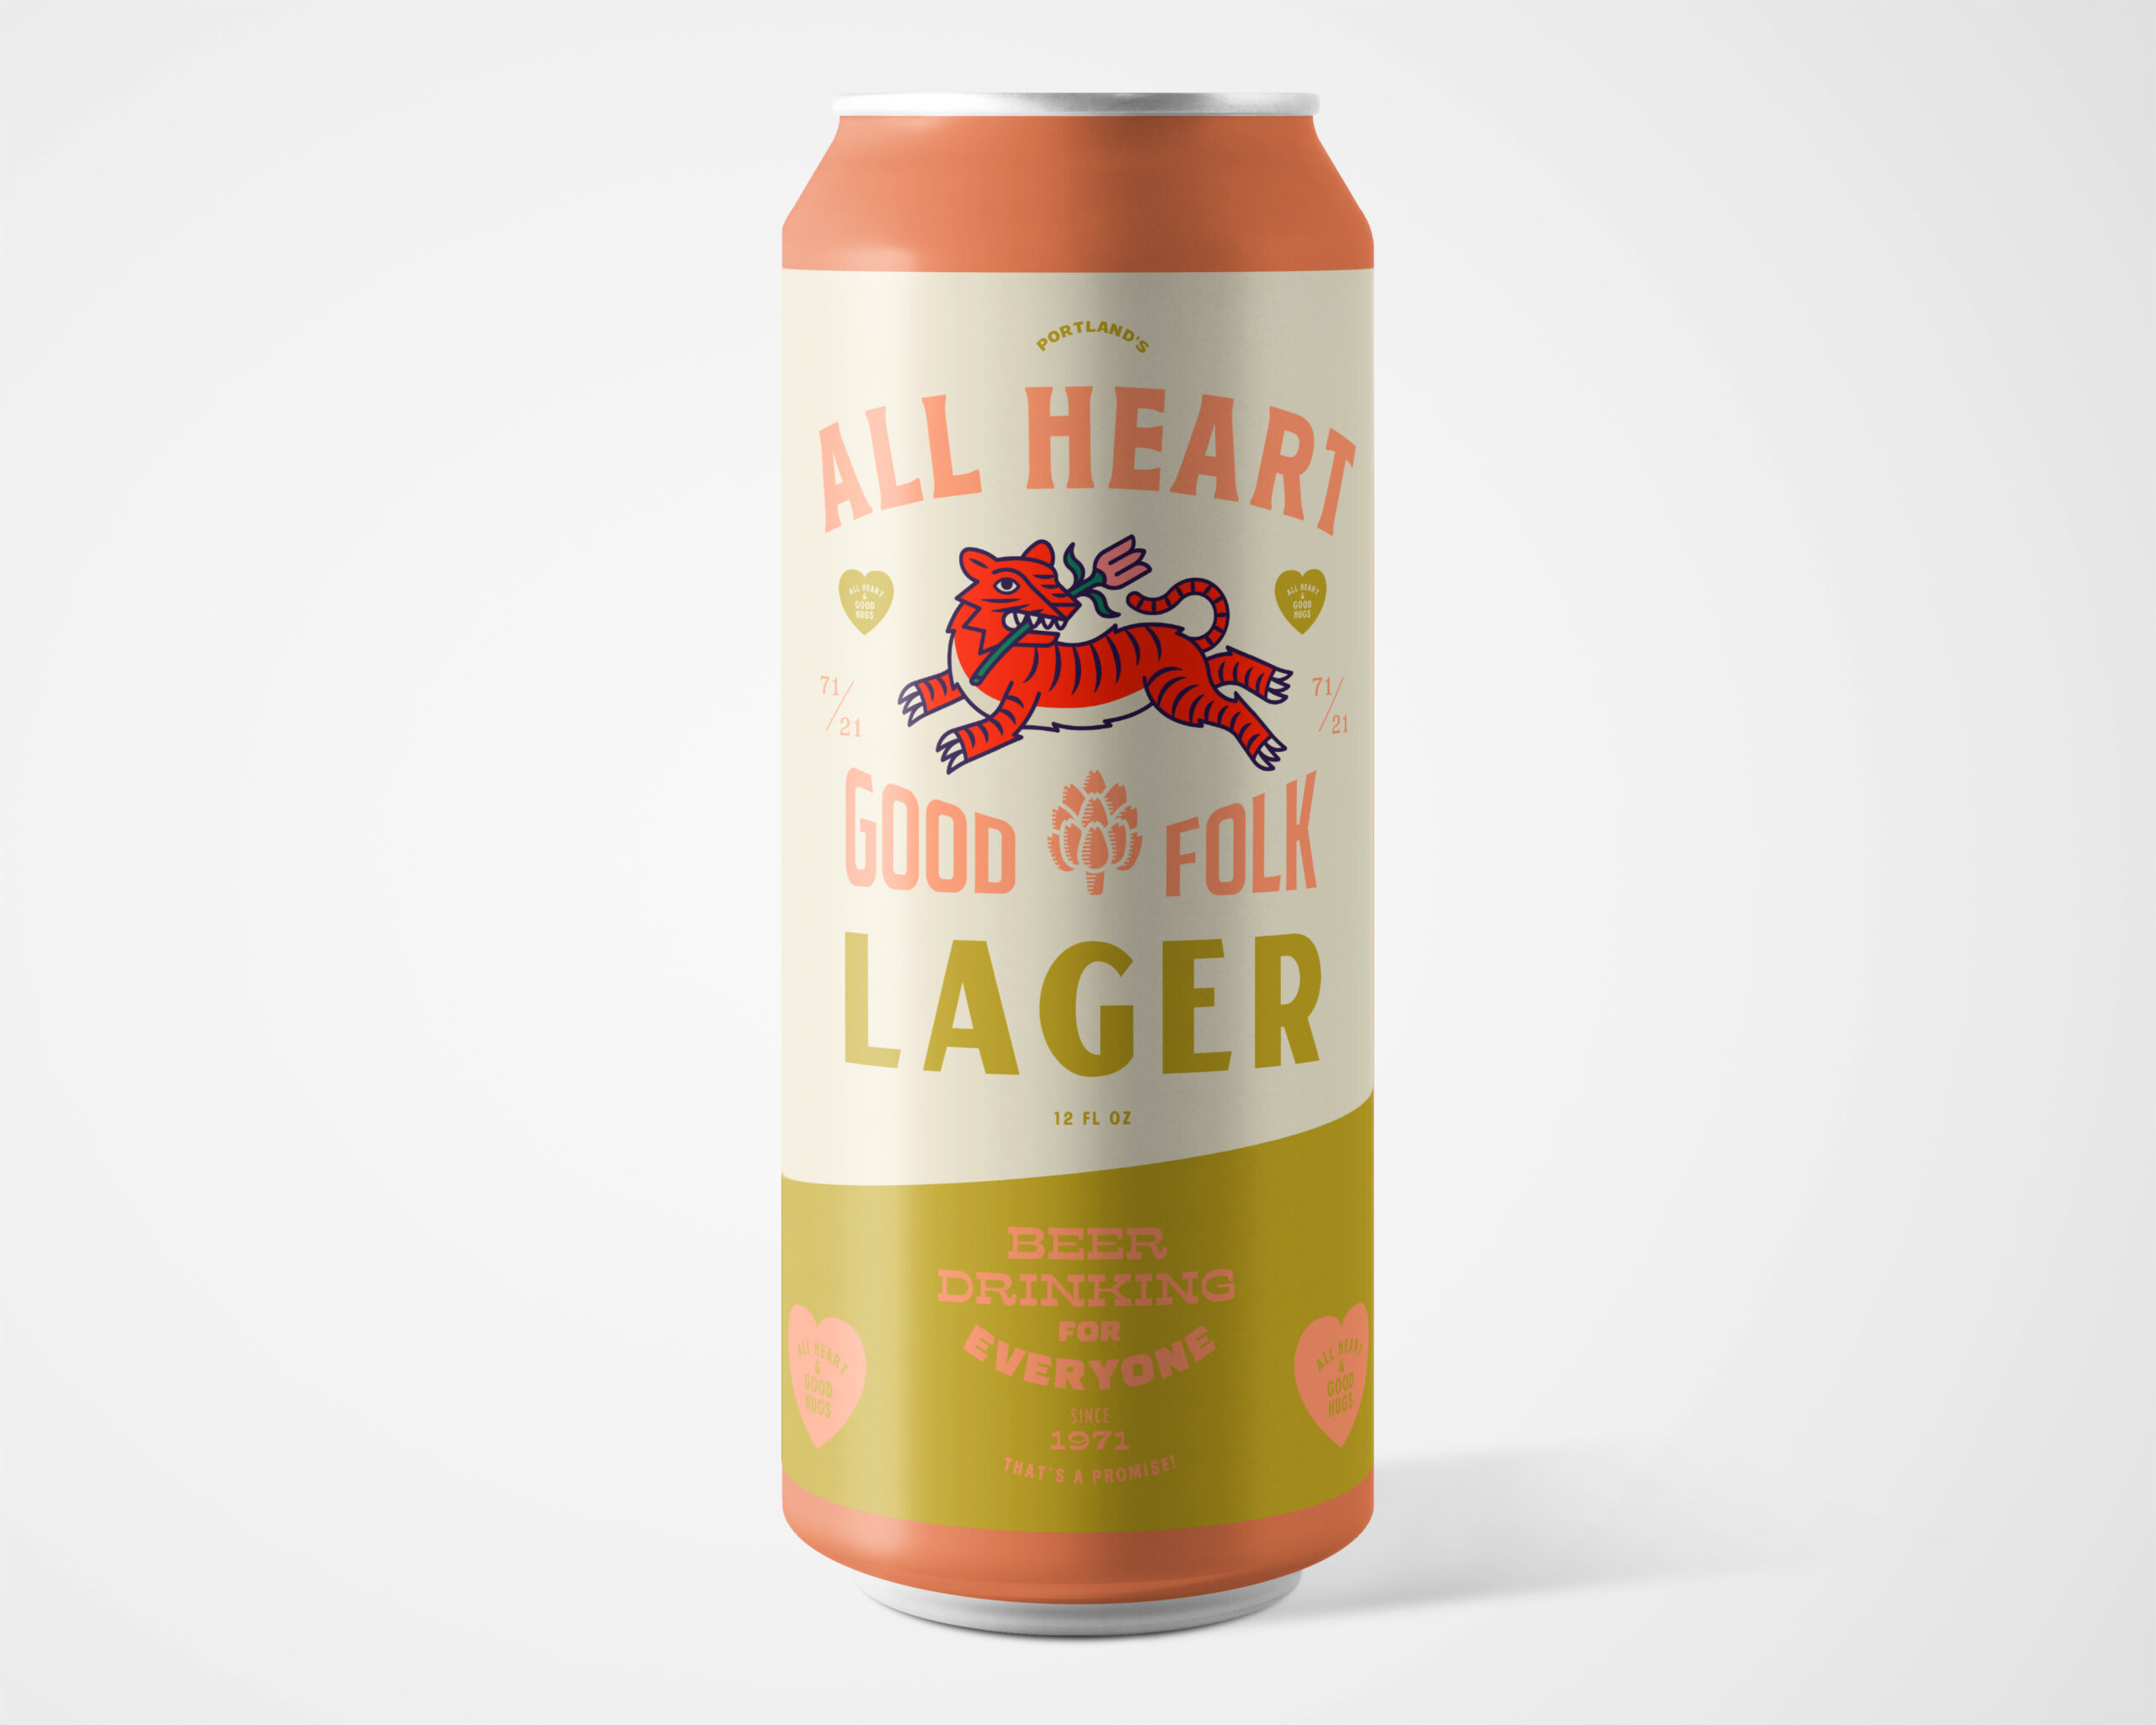 All Heart Lager, Artichoke Music